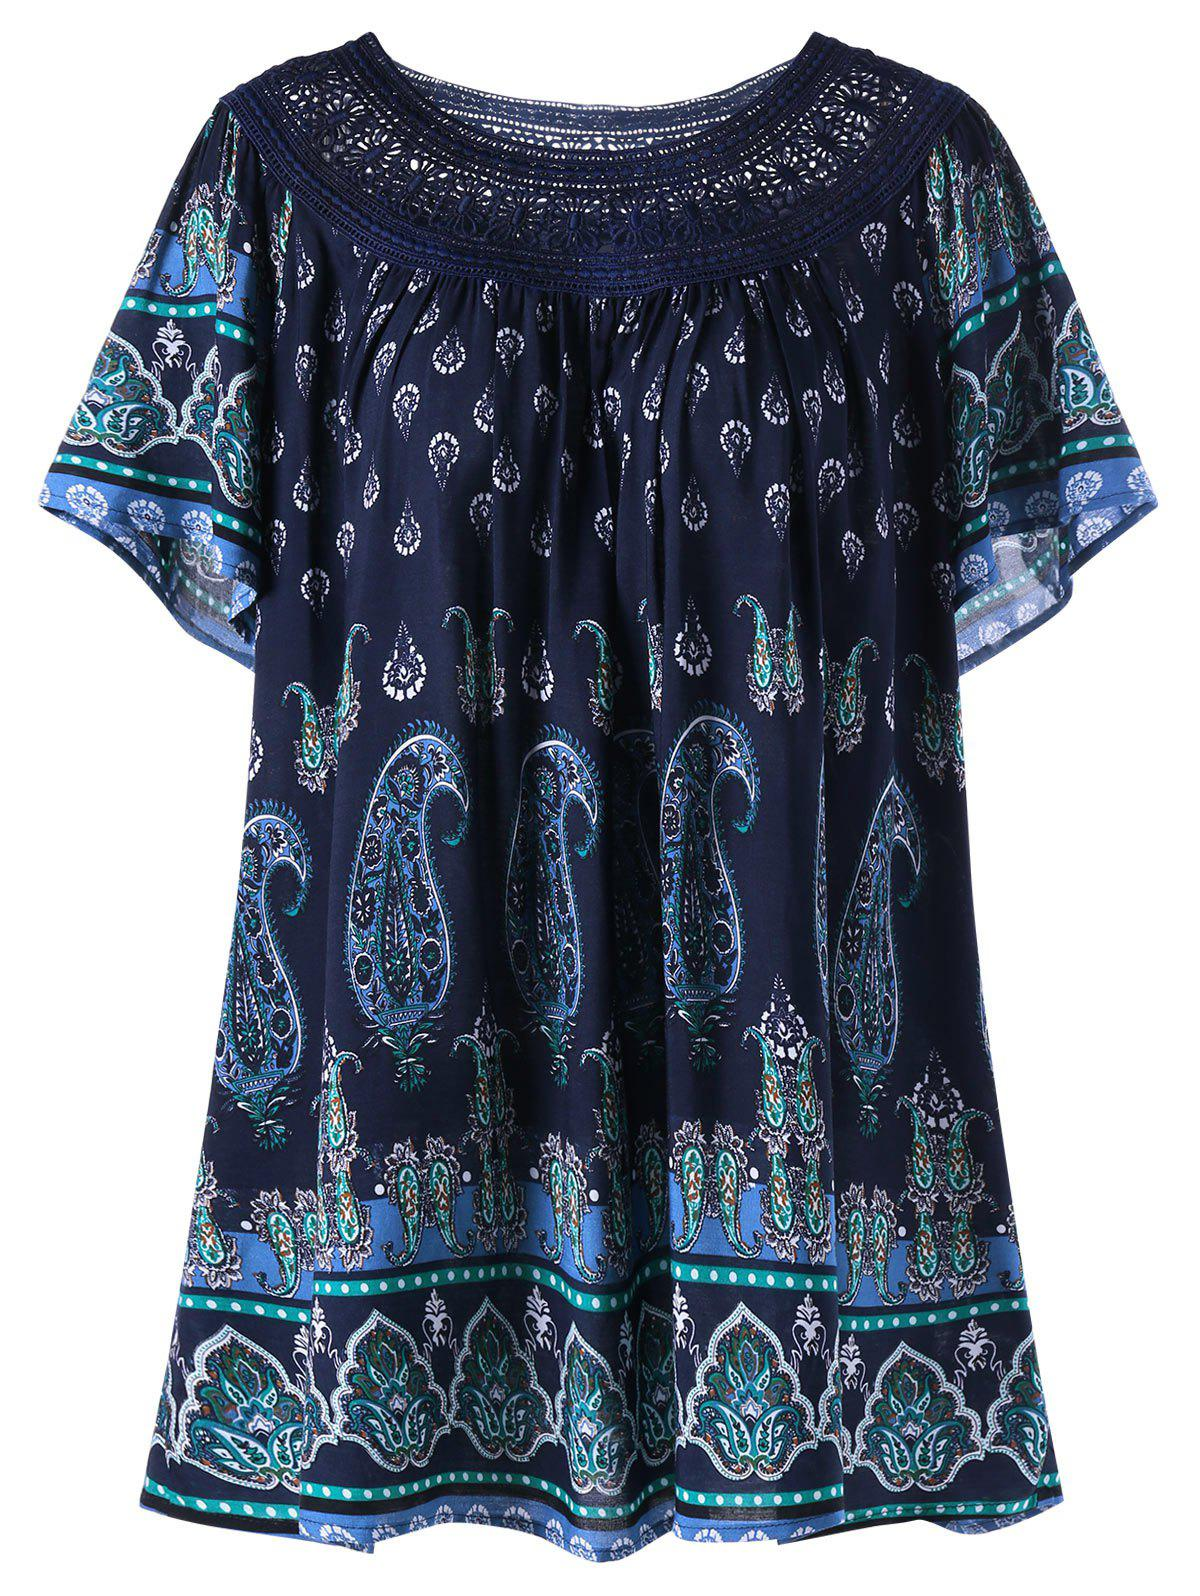 Plus Size Lace Trim Bohemian Tribal Print TopWOMEN<br><br>Size: 2XL; Color: DEEP BLUE; Material: Cotton Blends,Polyester; Shirt Length: Regular; Sleeve Length: Short; Collar: Scoop Neck; Style: Fashion; Season: Spring,Summer; Embellishment: Hollow Out; Pattern Type: Paisley; Weight: 0.2000kg; Package Contents: 1 x Top;